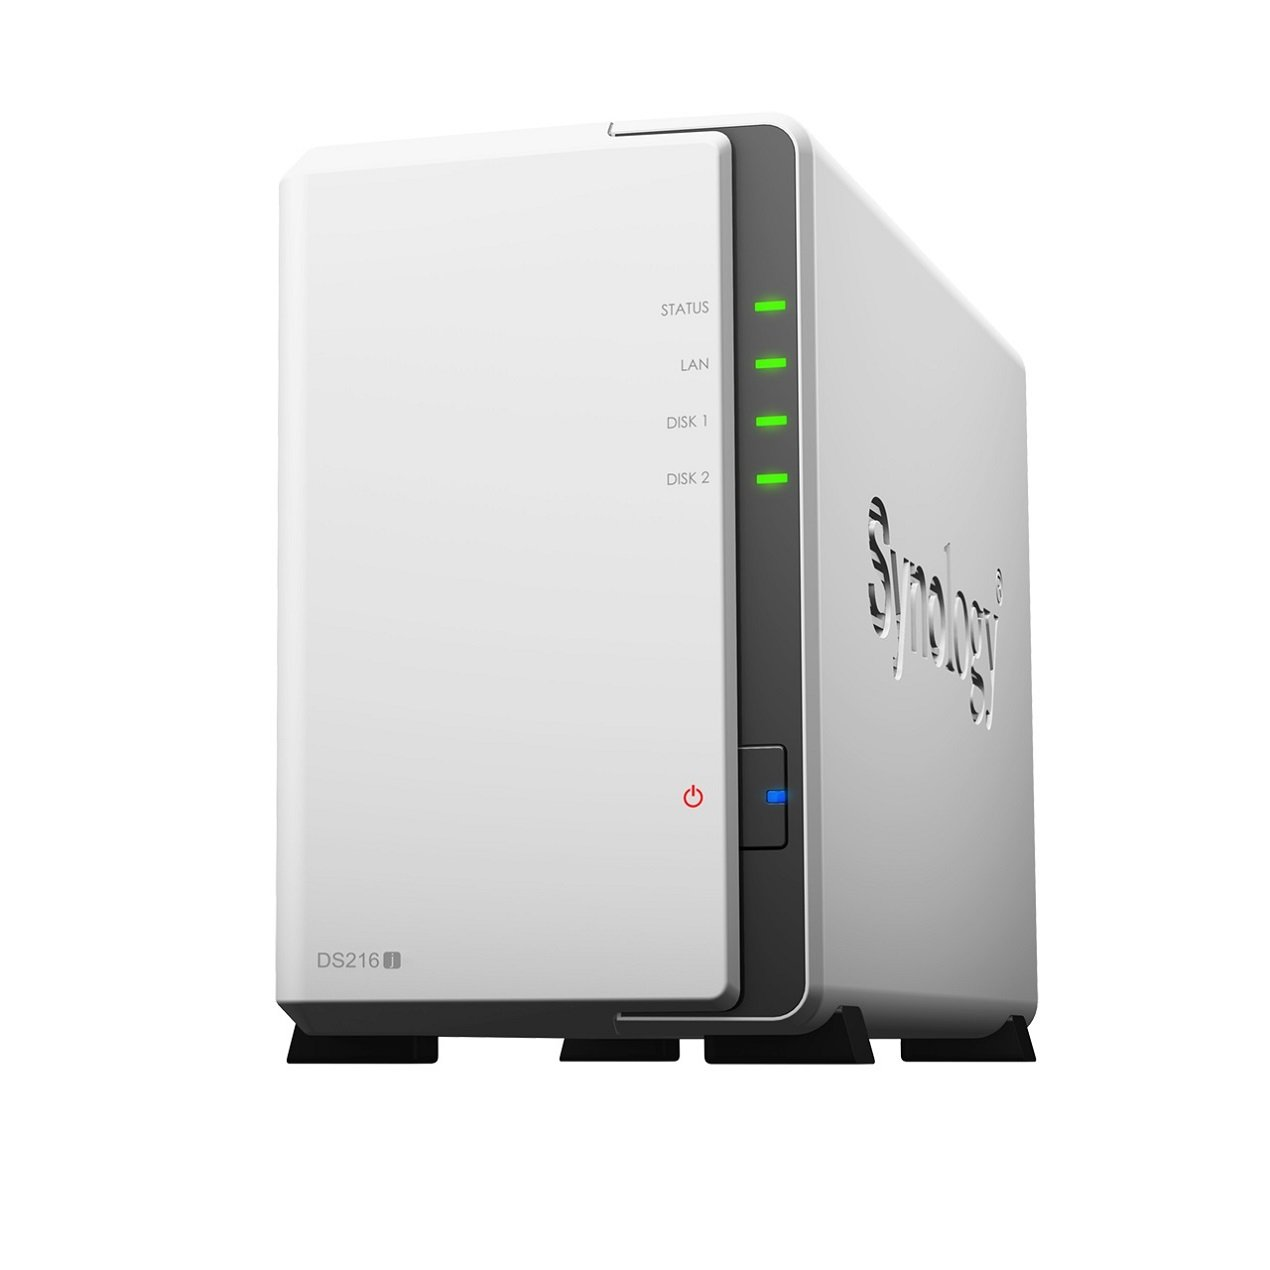 Synology DiskStation 2-bay 3.5-Inches NAS server 1.0GHz, 512MB RAM, 1xGigabit (DS216J ) by Synology